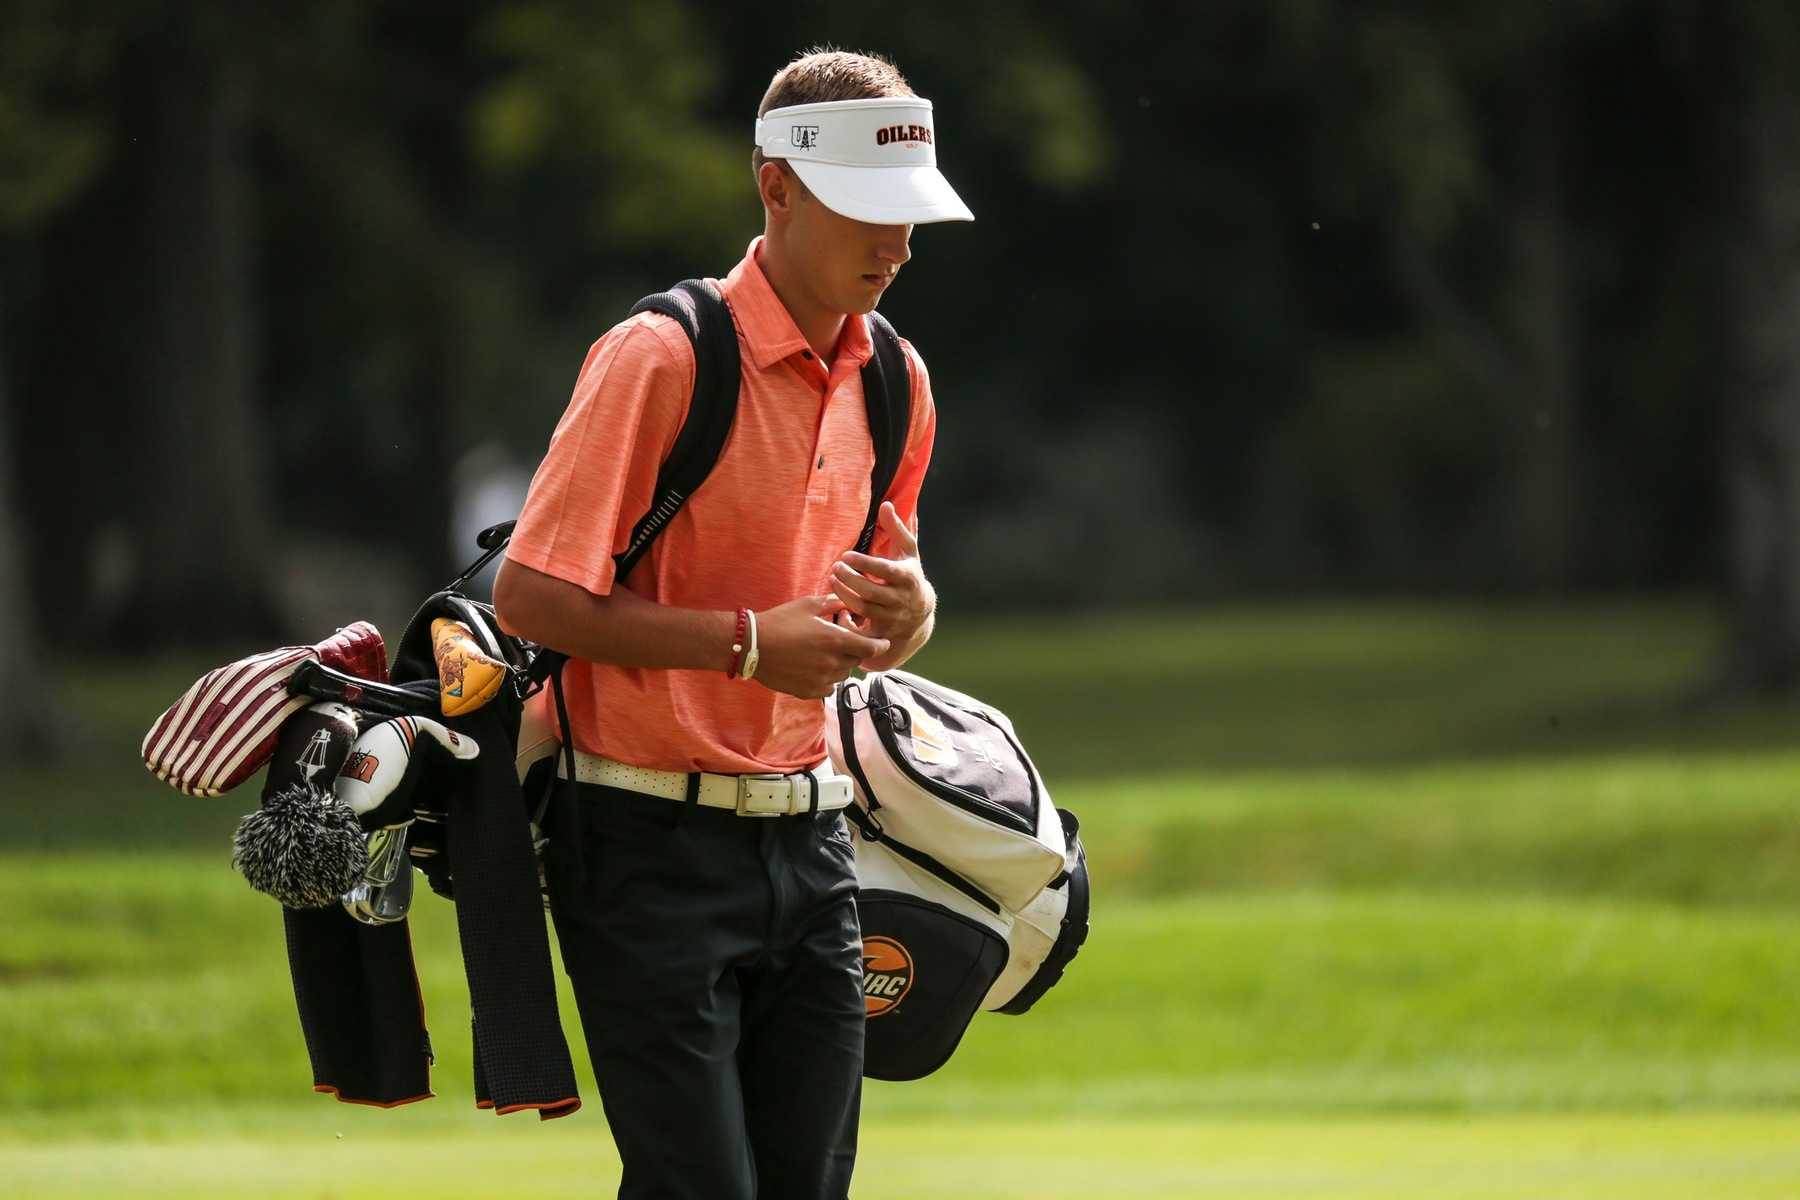 Oilers Golf in Top 4 After First Round